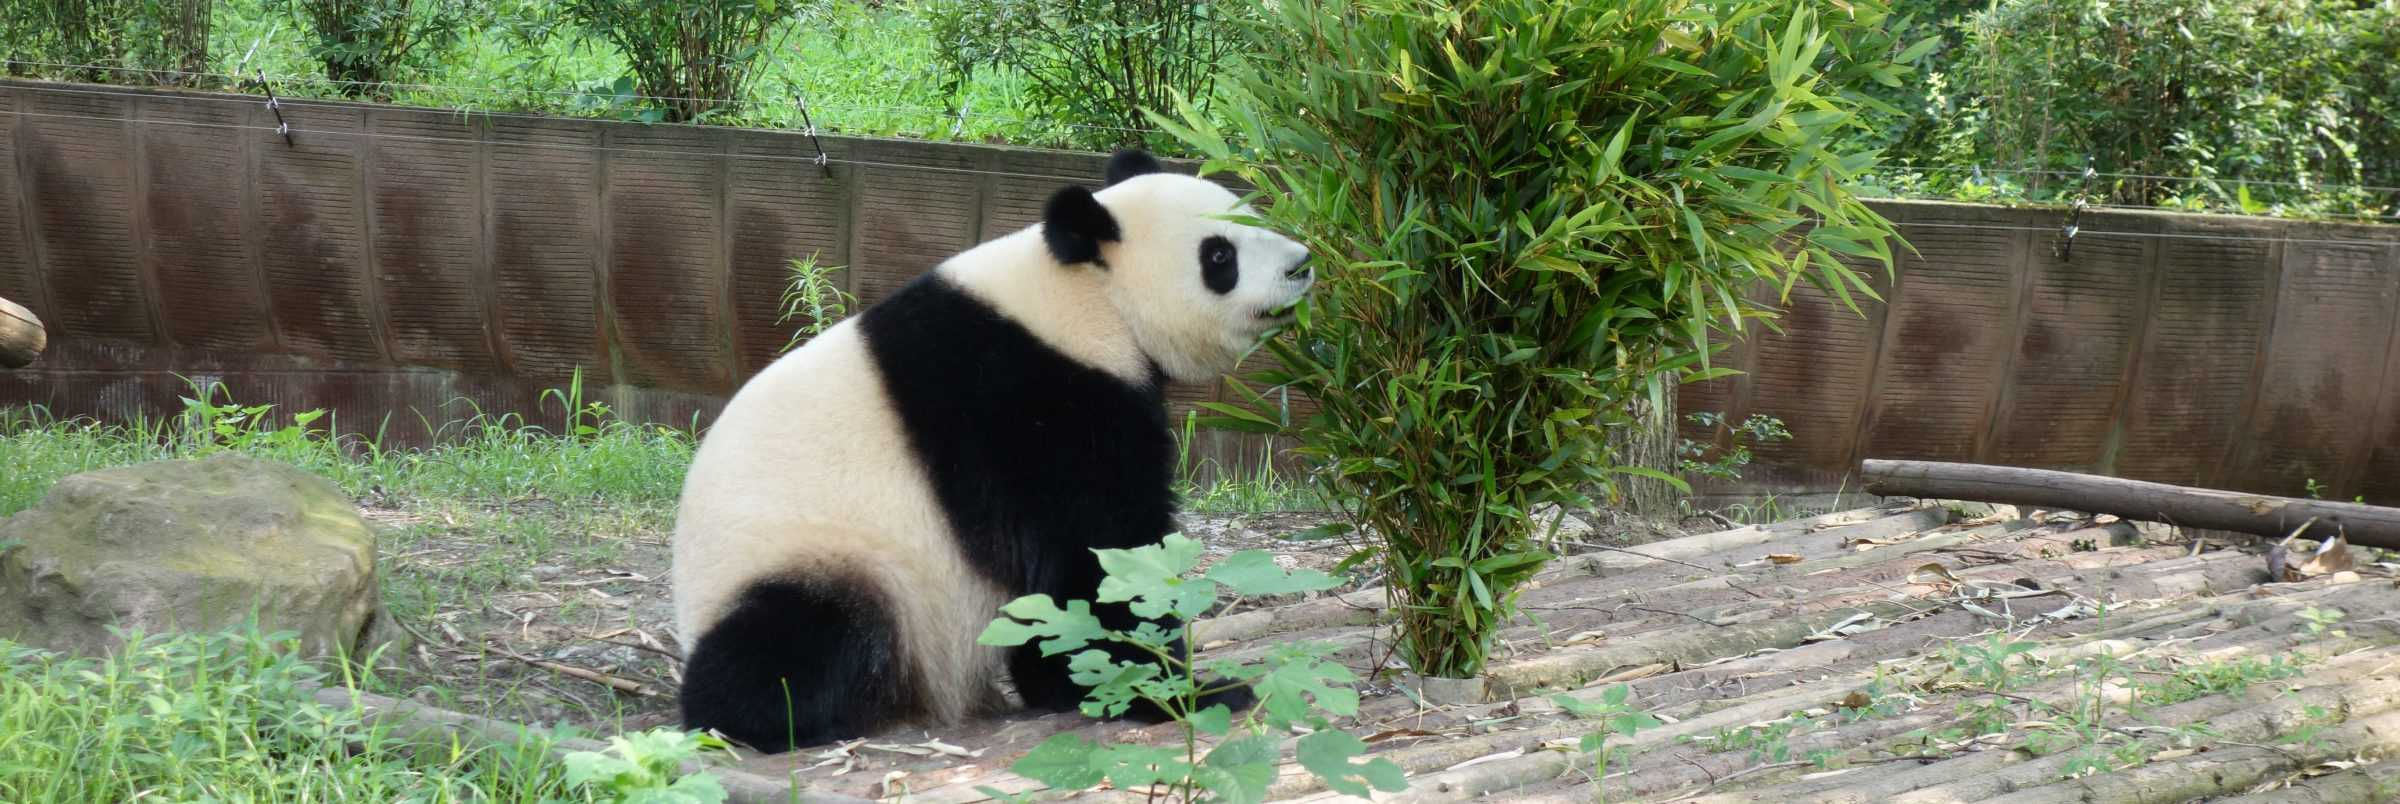 Panda, Chengdu, China